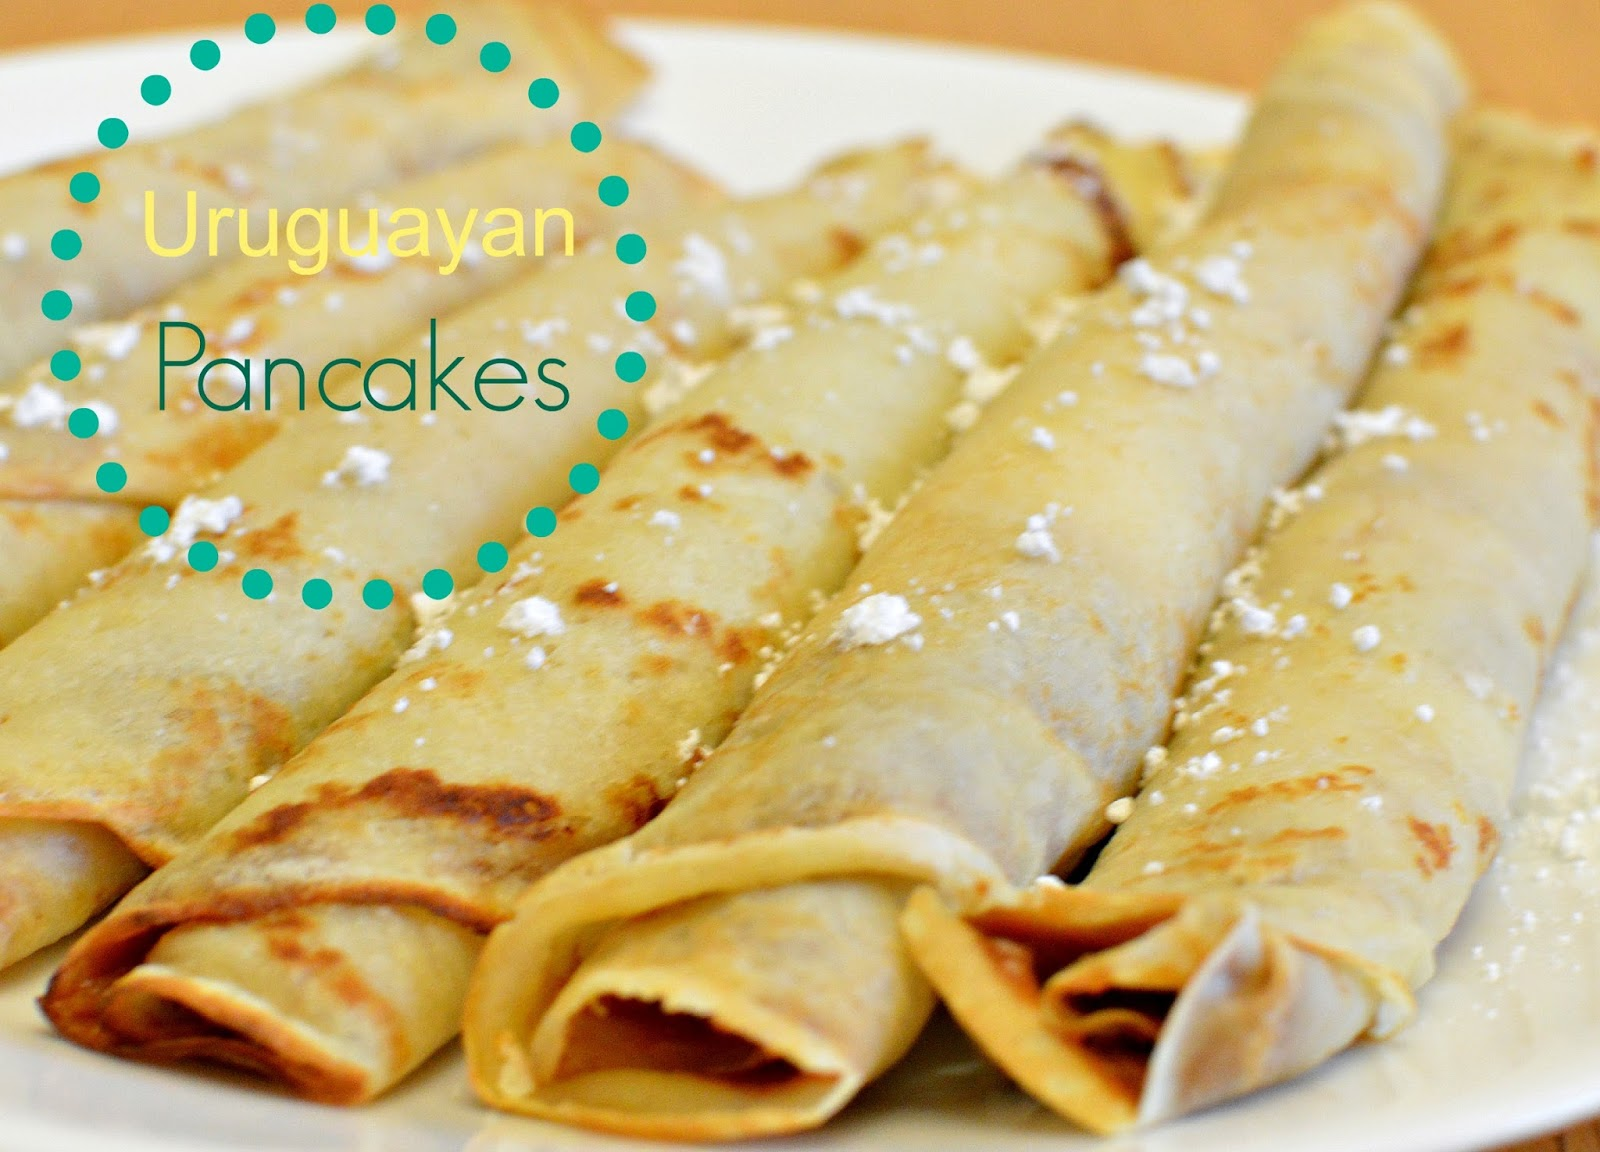 The family fun spot uruguayan pancakes you can also use this recipe for any dessert crepe youd like and fill them up with fruits they are also delicious with cinnamon sugar forumfinder Choice Image